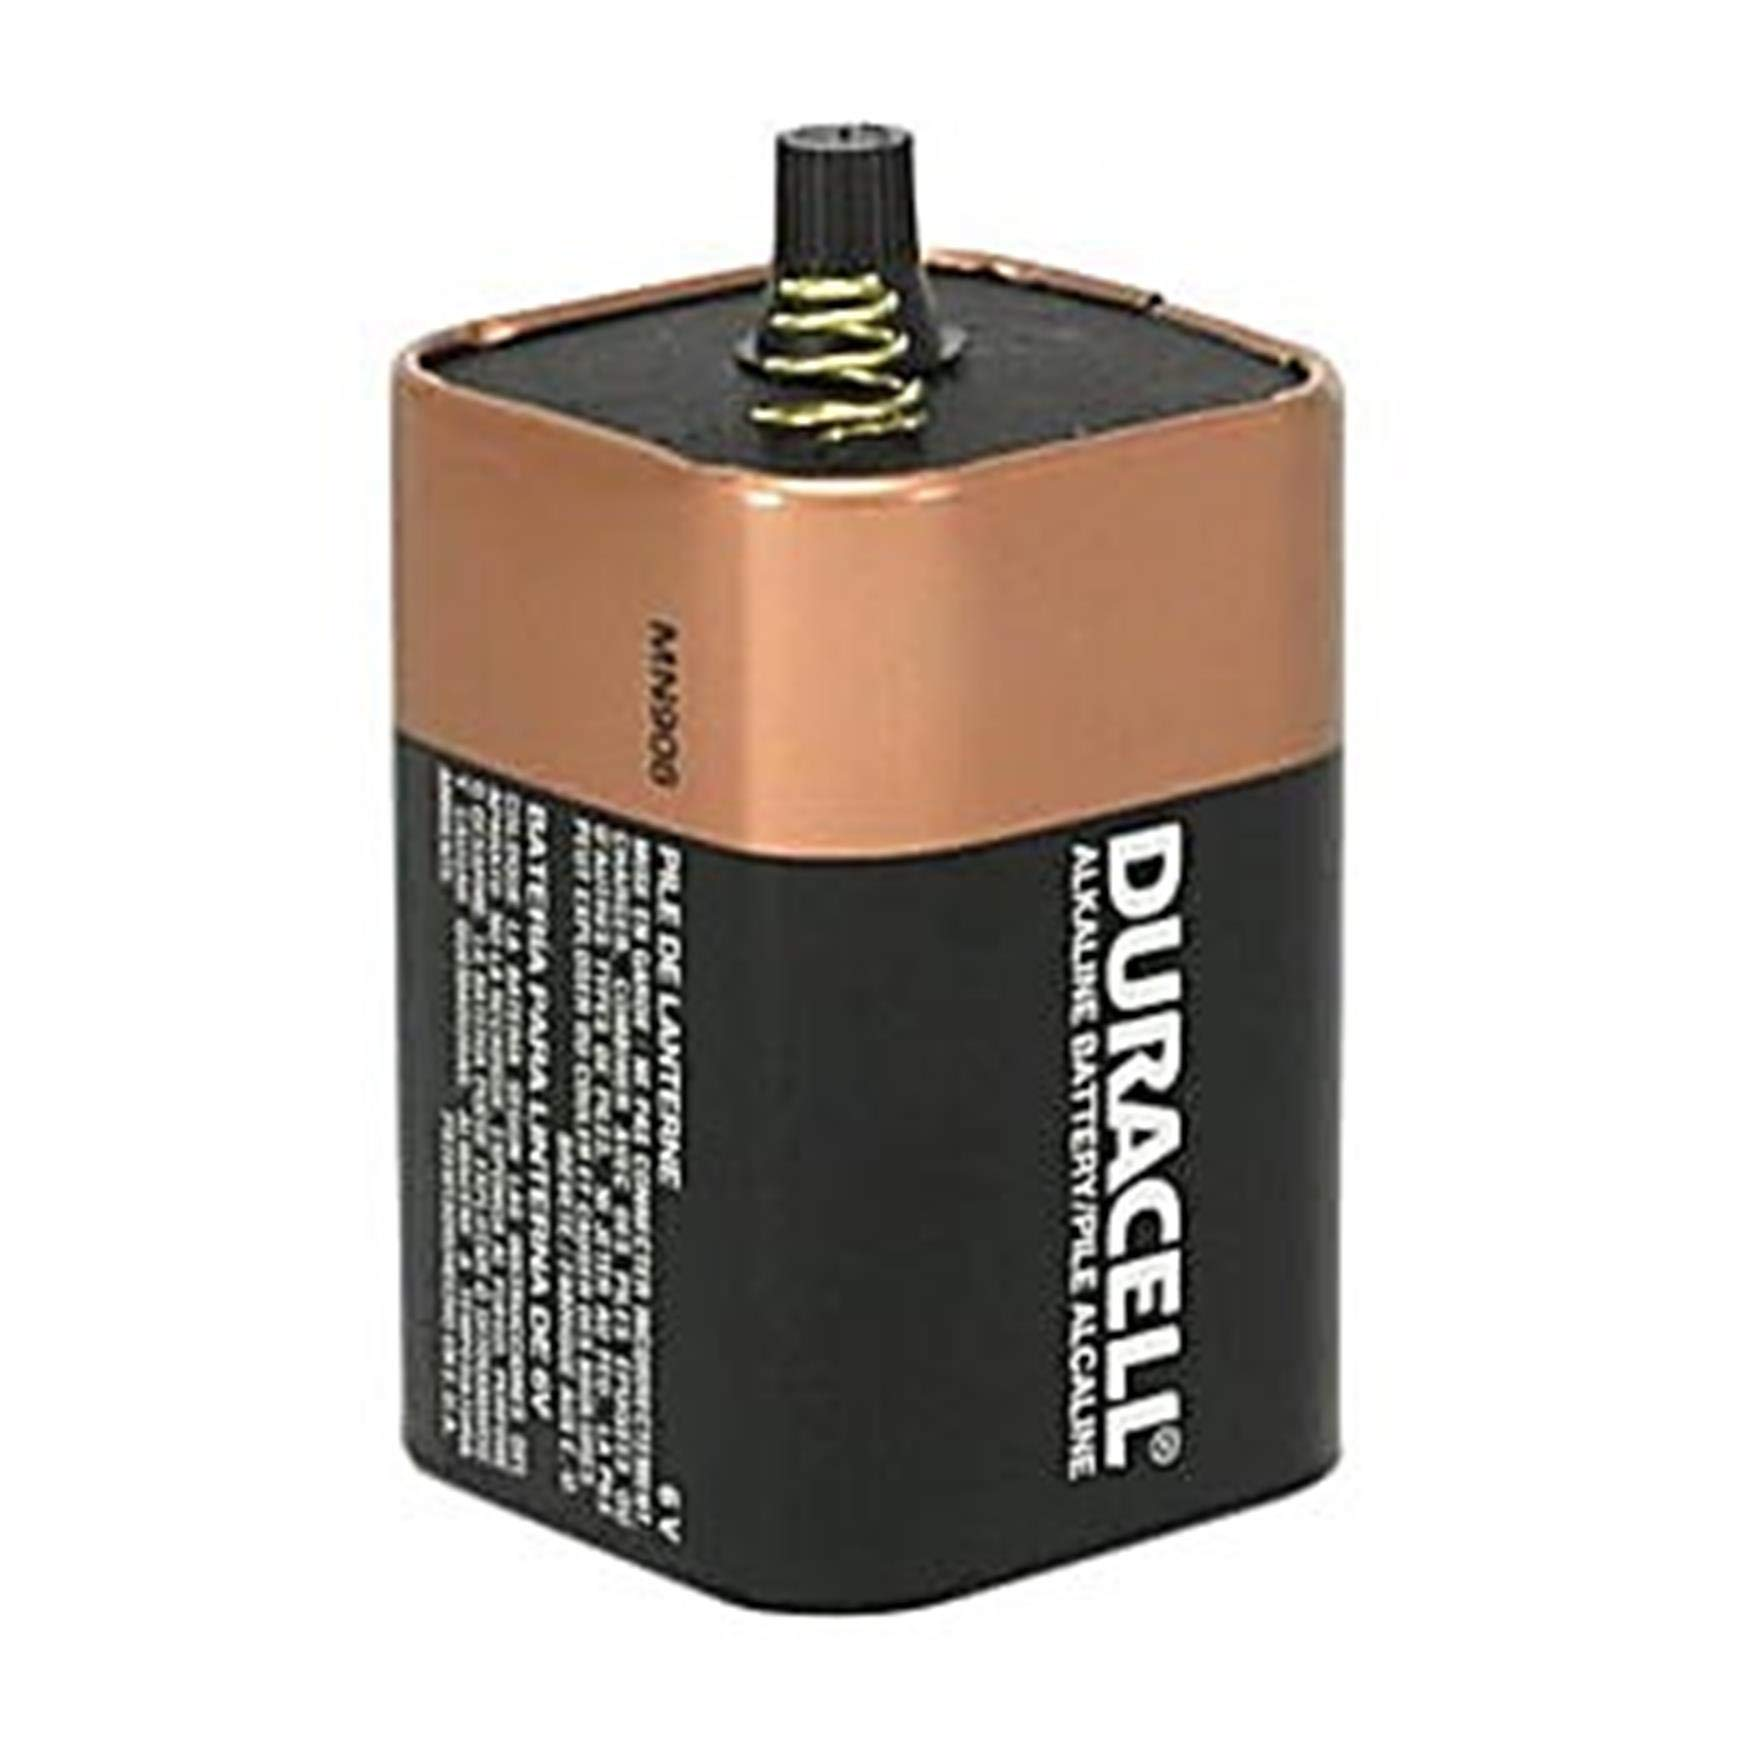 Duracell PGD MN908 Battery, Alkaline, 6V, Spring Top (Pack of 6)